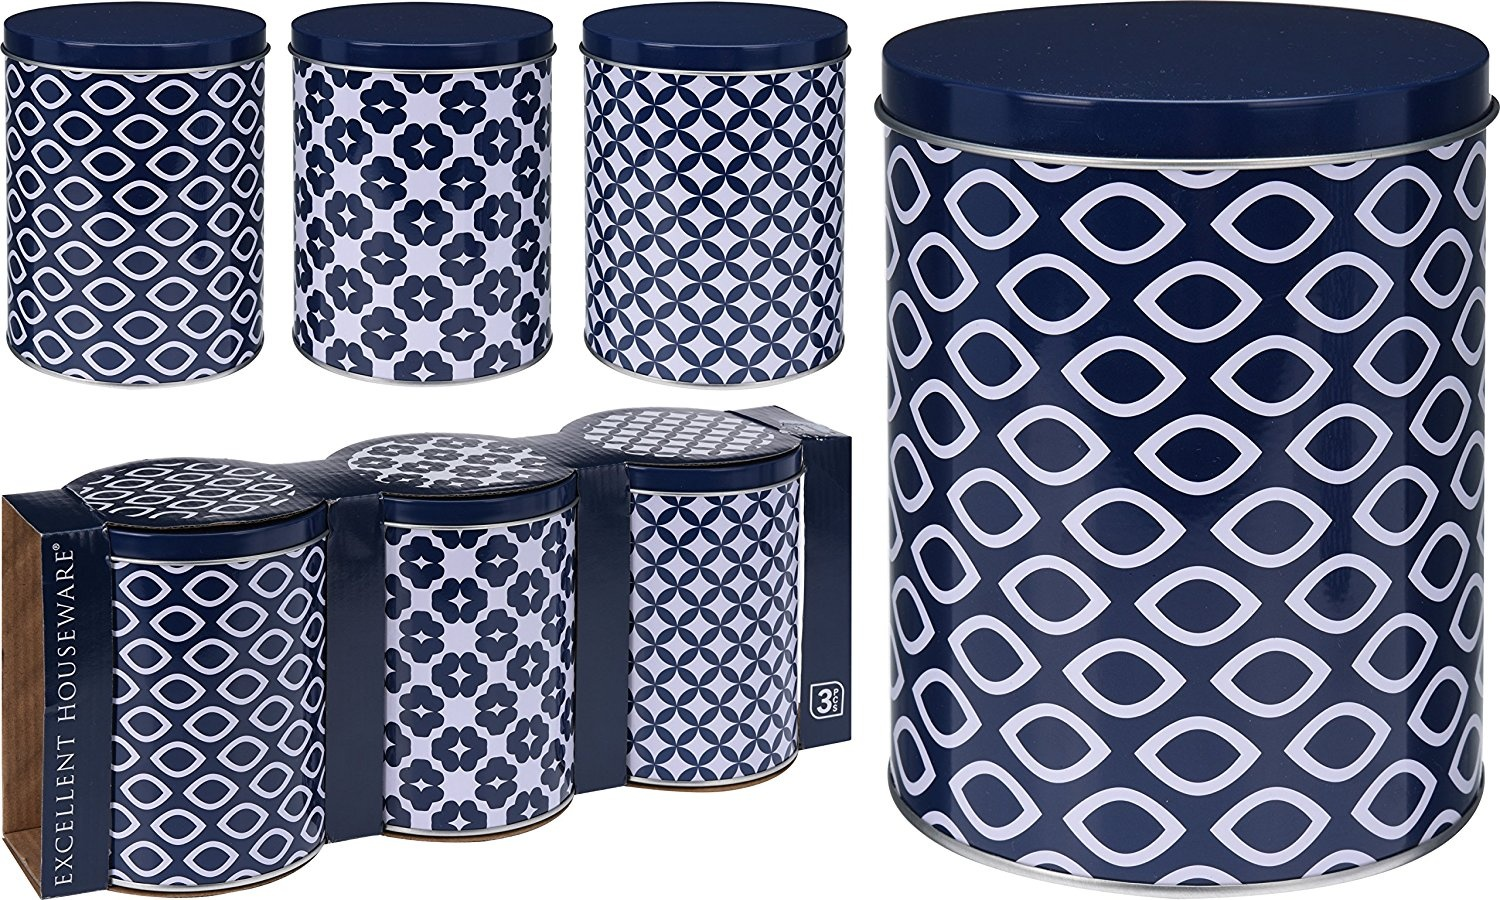 Nautical Design Set Of 3 Tea Coffee Sugar Navy Blue White Food Storage Canister By E H Shop Online For Kitchen In Australia